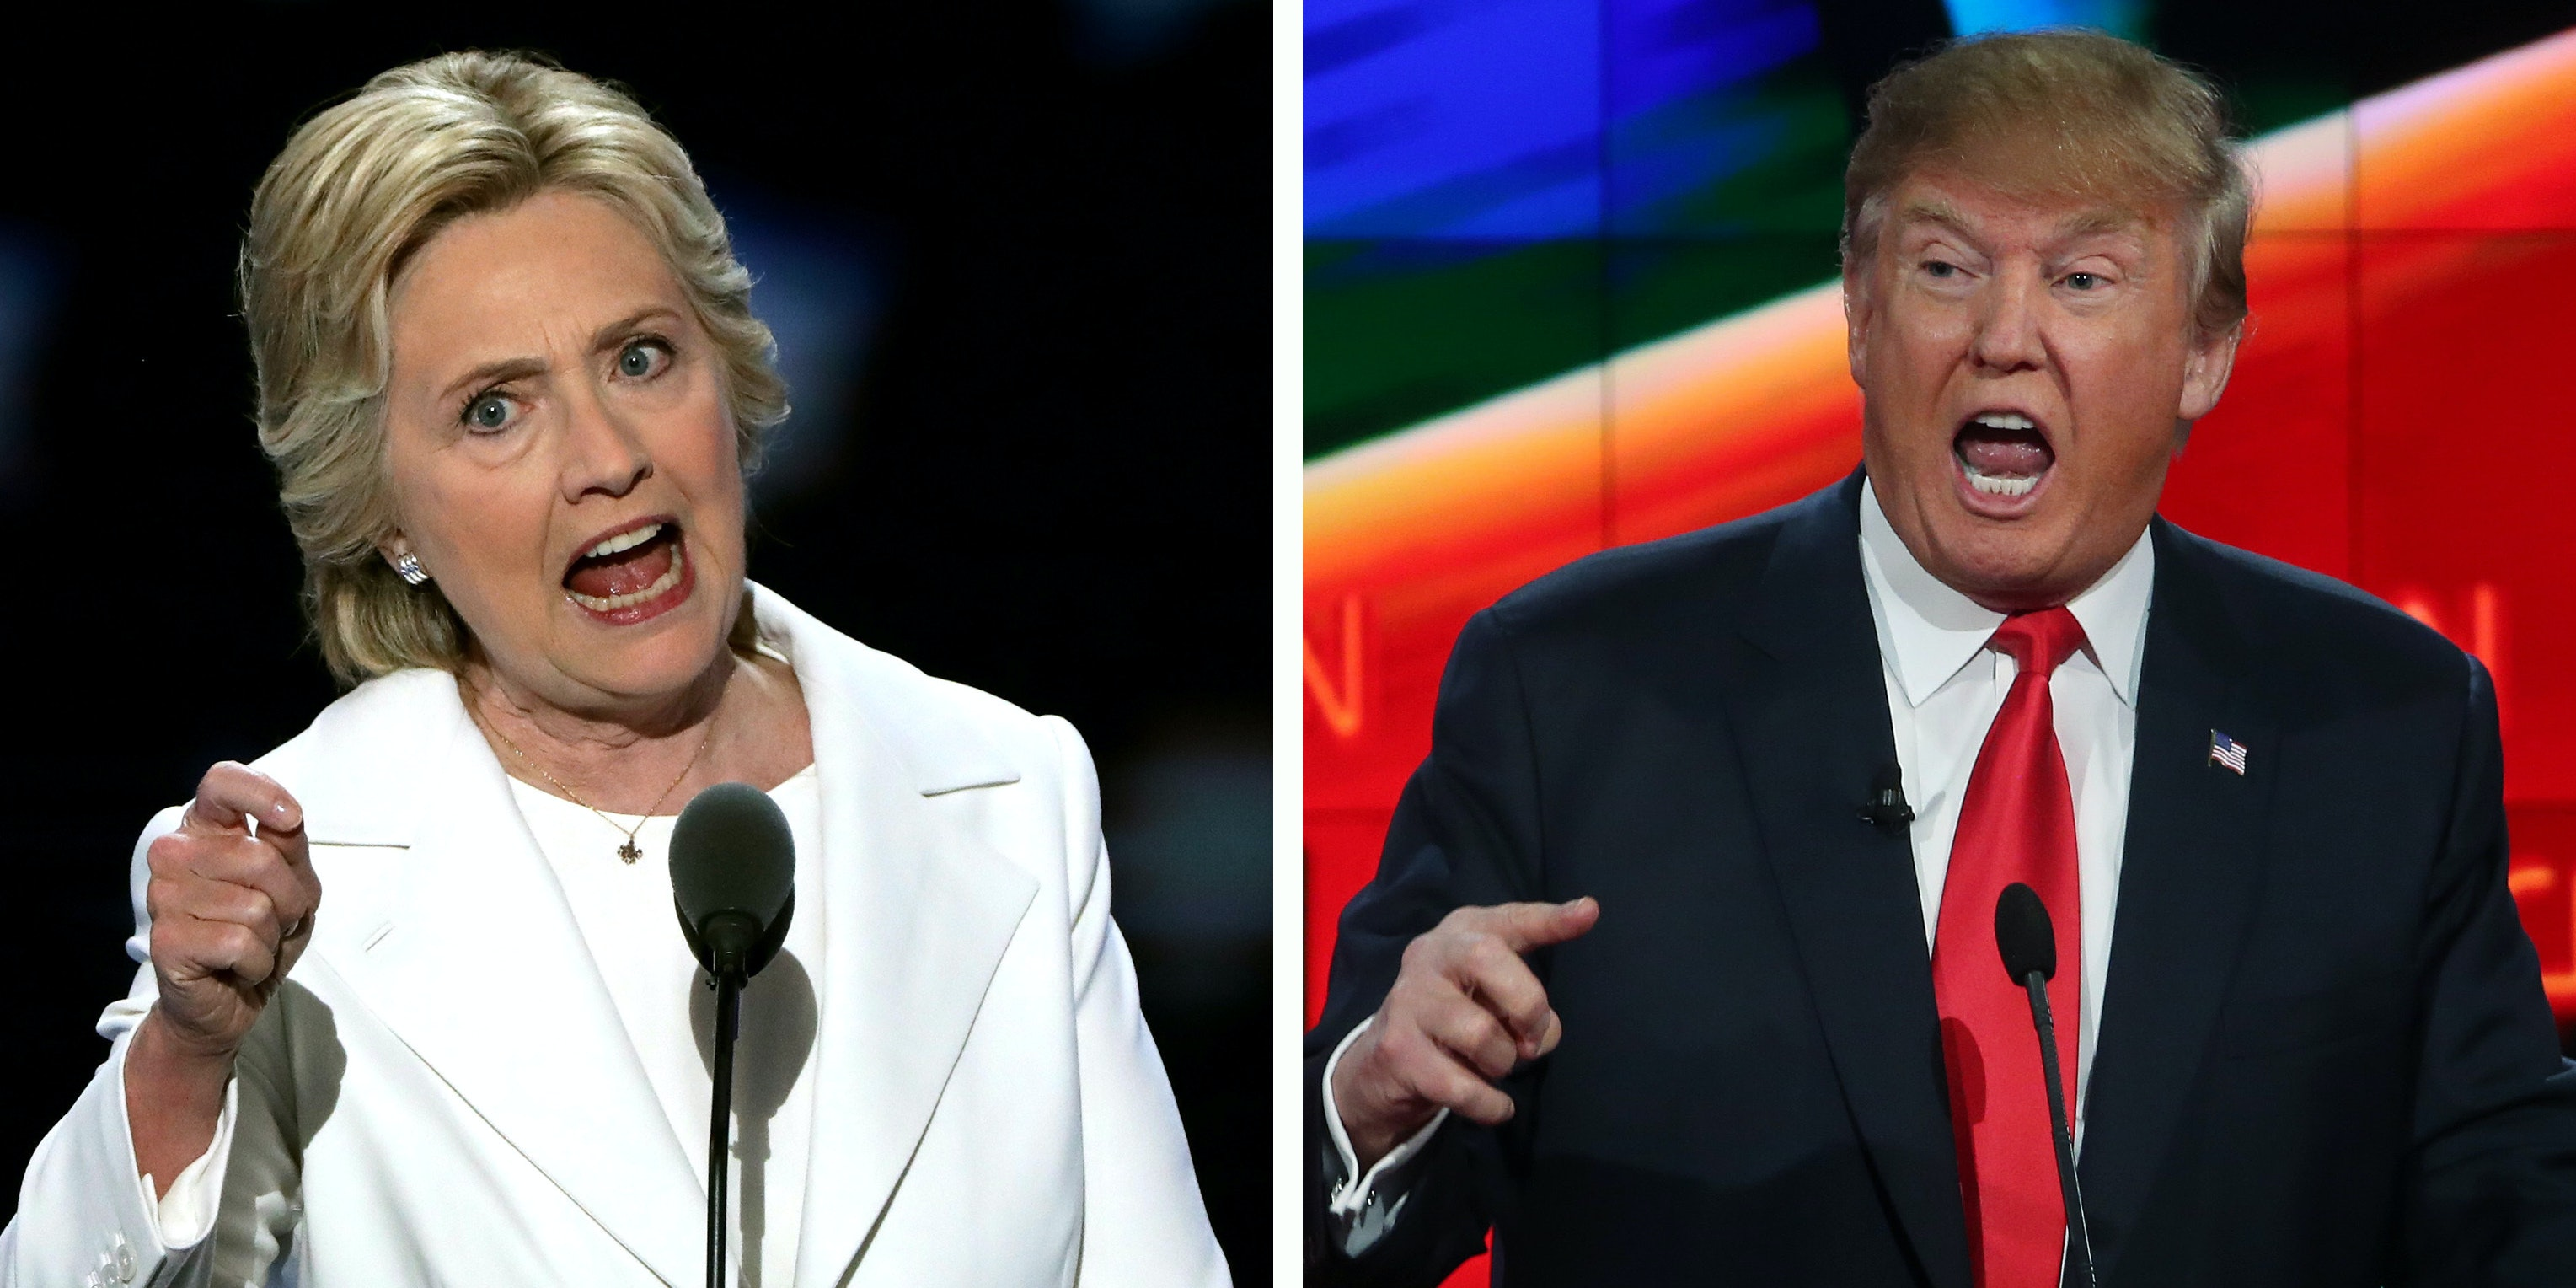 (FILE PHOTO) In this composite image a comparison has been made between former US Presidential Candidates Hillary Clinton (L) and Donald Trump.  LEFT IMAGE   PHILADELPHIA, PA - JULY 28:  Democratic presidential candidate Hillary Clinton delivers remarks during the fourth day of the Democratic National Convention at the Wells Fargo Center, July 28, 2016 in Philadelphia, Pennsylvania. Democratic presidential candidate Hillary Clinton received the number of votes needed to secure the party's nomination. An estimated 50,000 people are expected in Philadelphia, including hundreds of protesters and members of the media. The four-day Democratic National Convention kicked off July 25.  (Photo by Alex Wong/Getty Images)  RIGHT IMAGE  LAS VEGAS, NV - DECEMBER 15:  Republican presidential candidate Donald Trump during the CNN Republican presidential debate on December 15, 2015 in Las Vegas, Nevada. This is the last GOP debate of the year, with U.S. Sen. Ted Cruz (R-TX) gaining in the polls in Iowa and other early voting states and Donald Trump rising in national polls.  (Photo by Justin Sullivan/Getty Images)